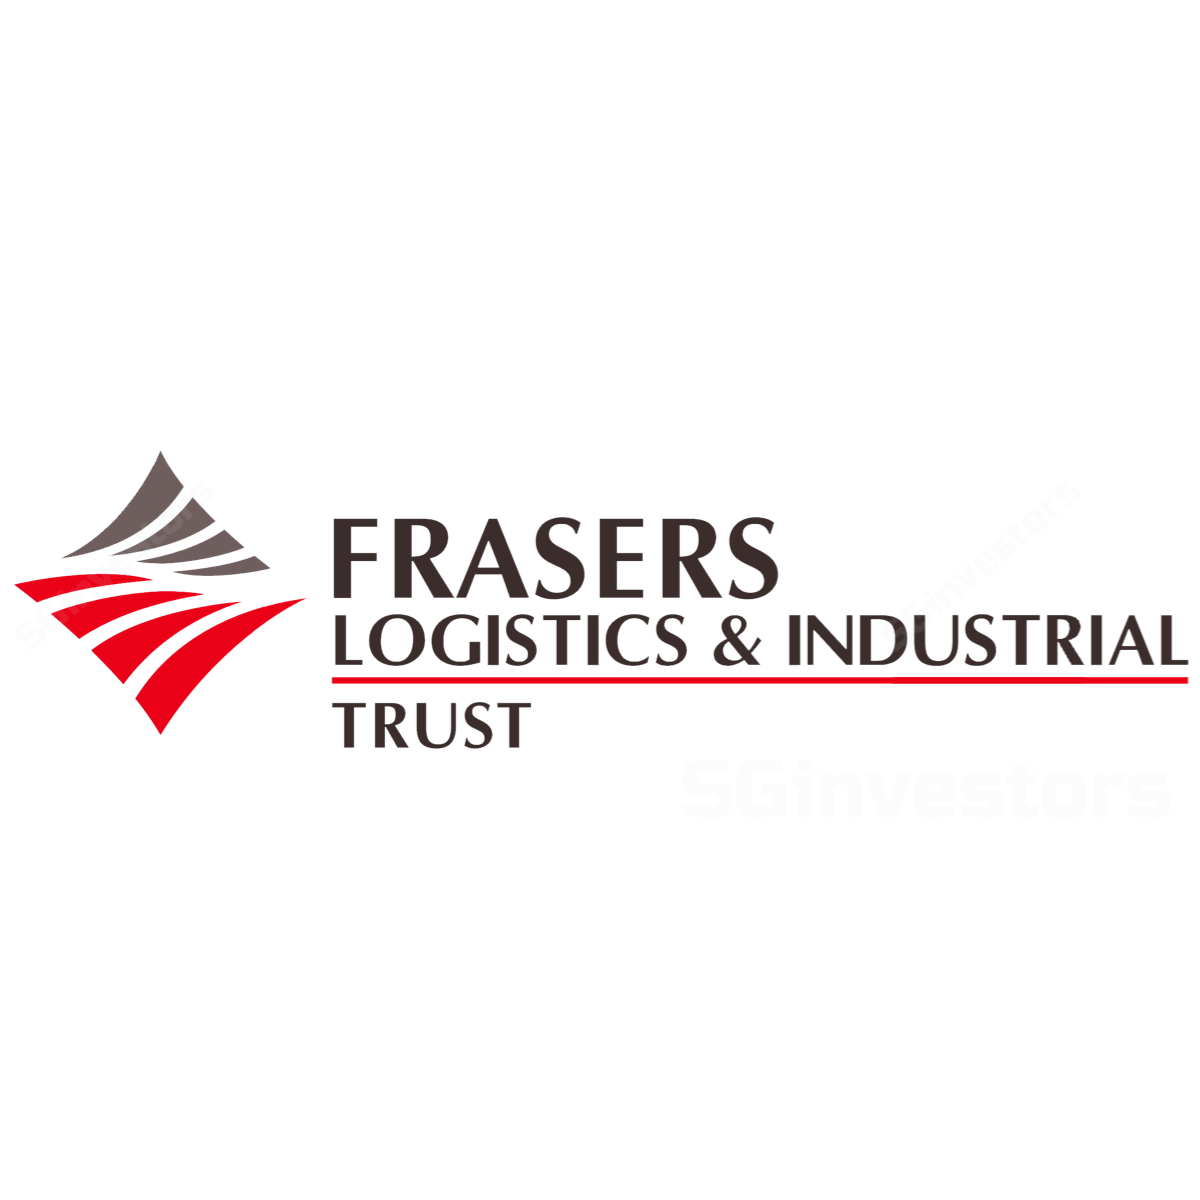 Frasers Logistics & Industrial Trust - CIMB Research 2017-11-02: 4QFY9/17 You Shall Ride Eternal, Shiny And Chrome